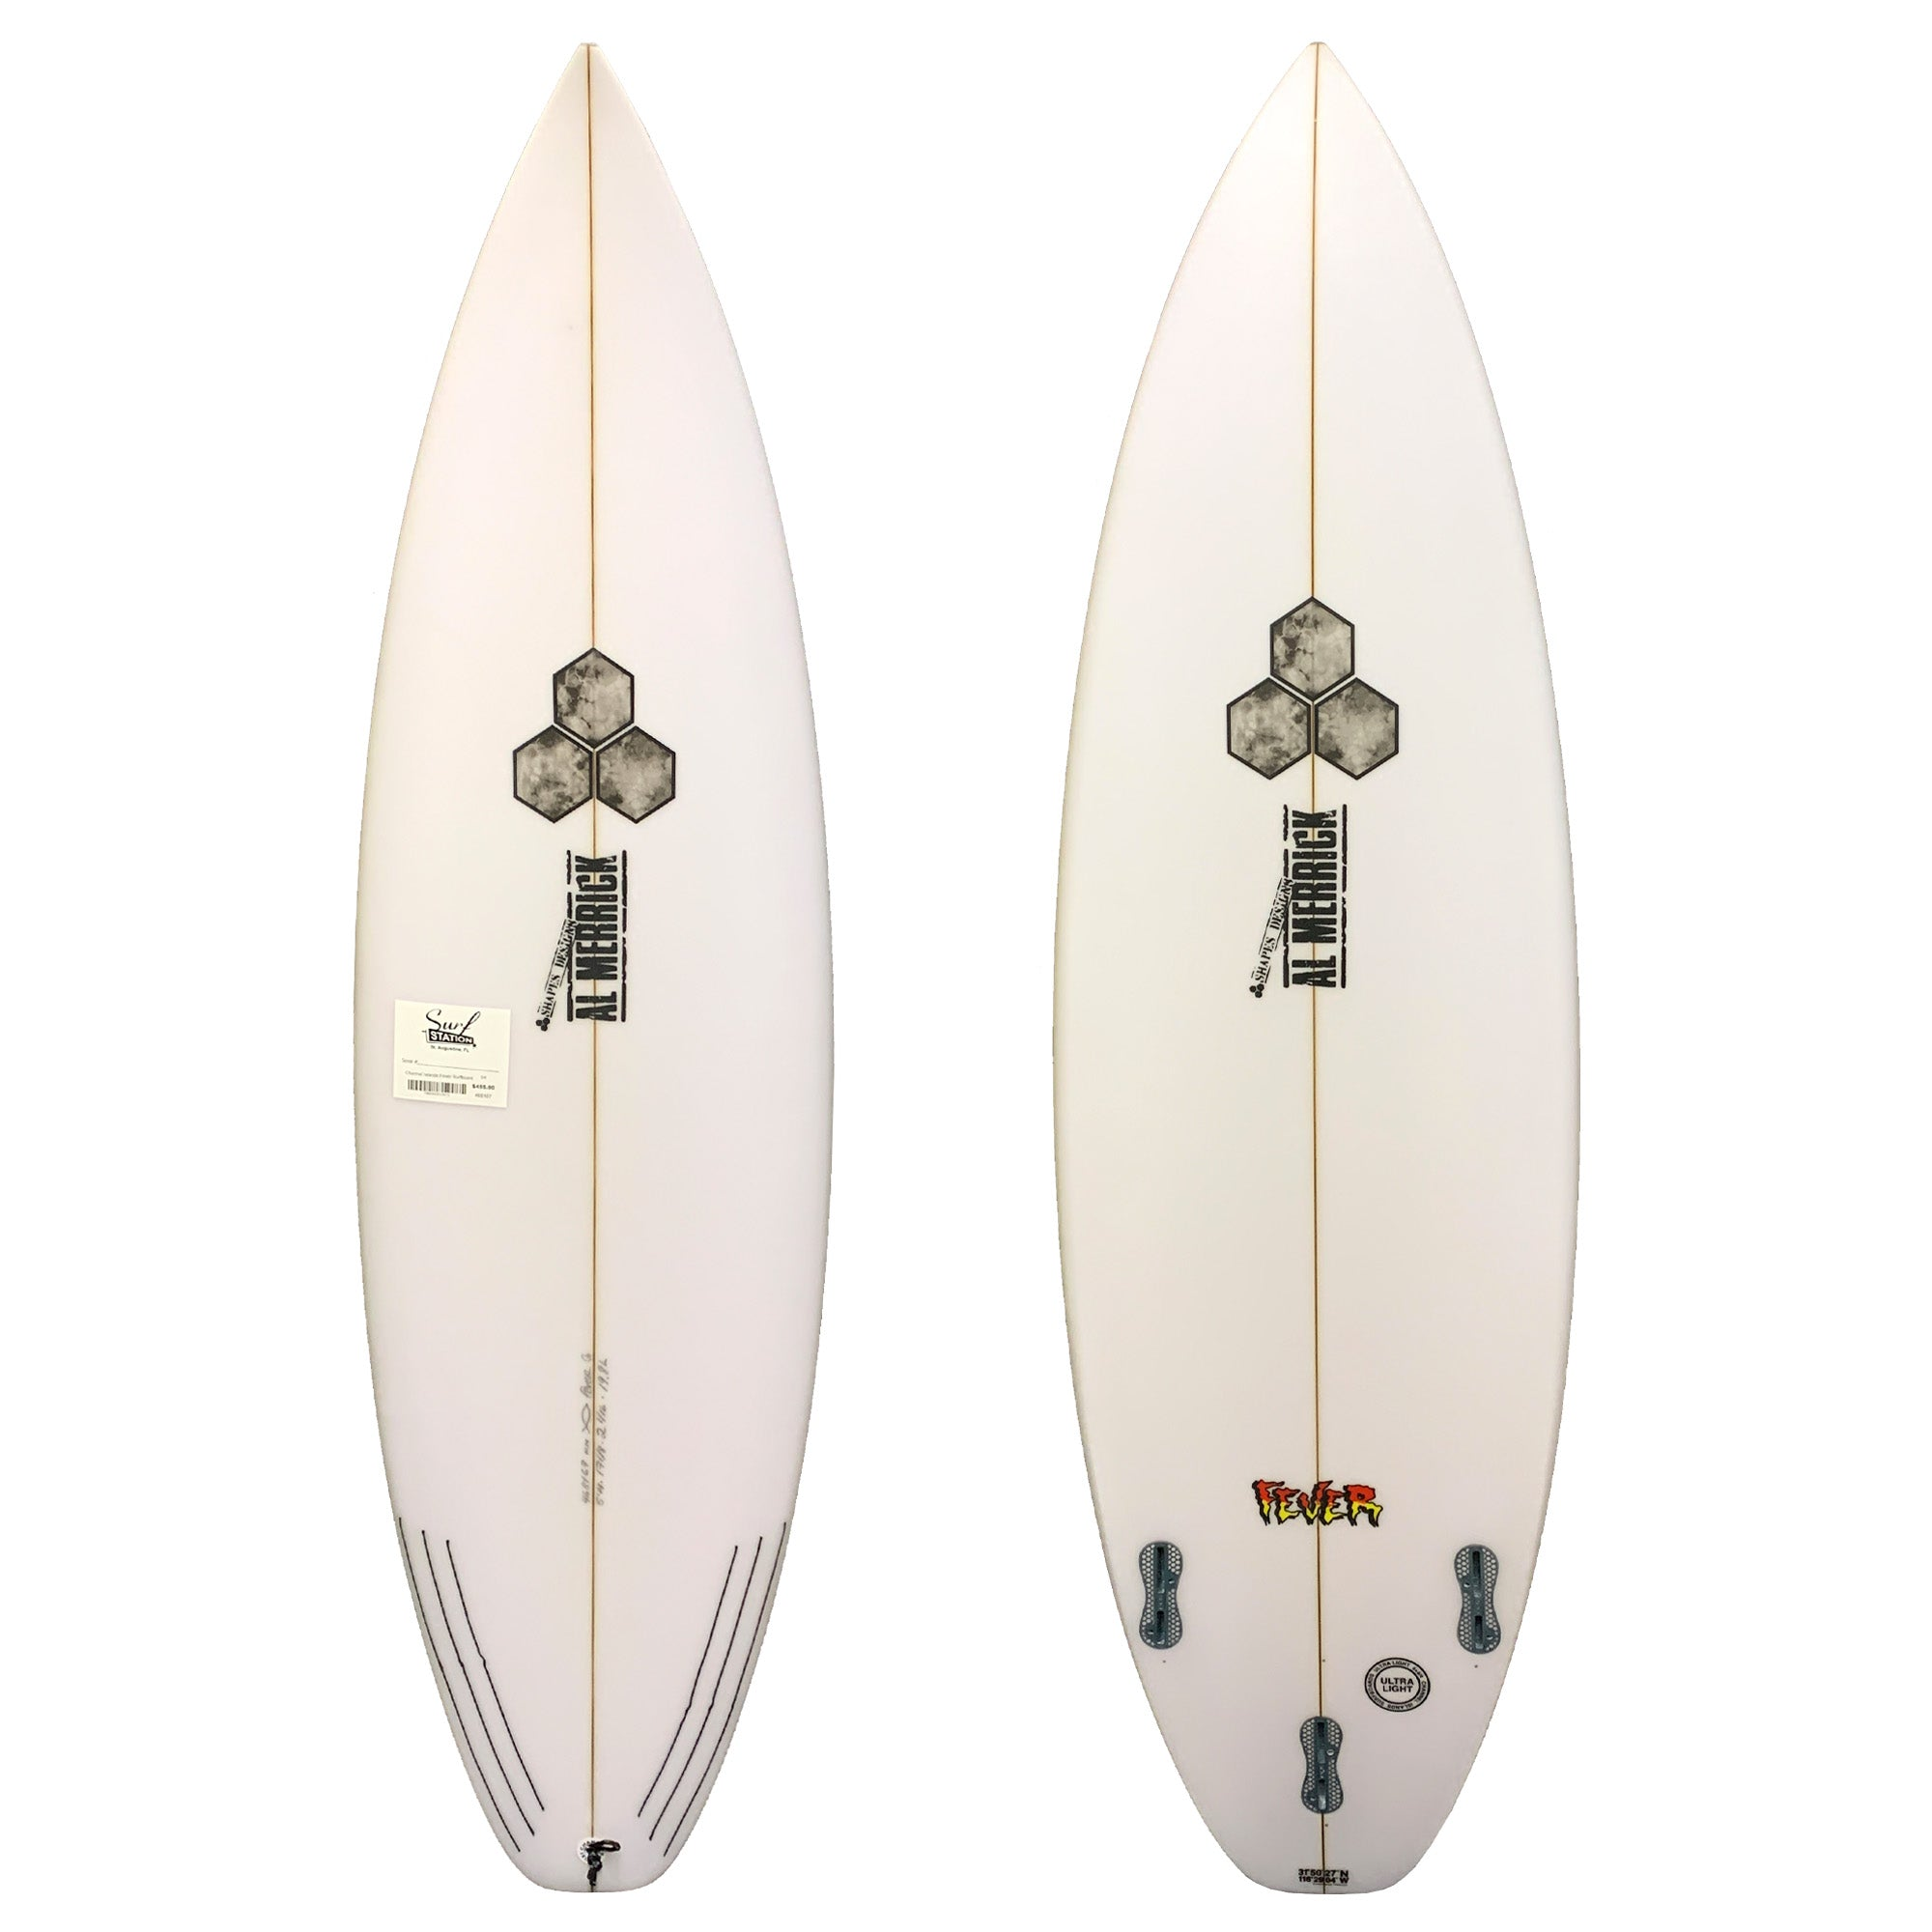 Channel Islands Fever Grom Surfboard - FCS II